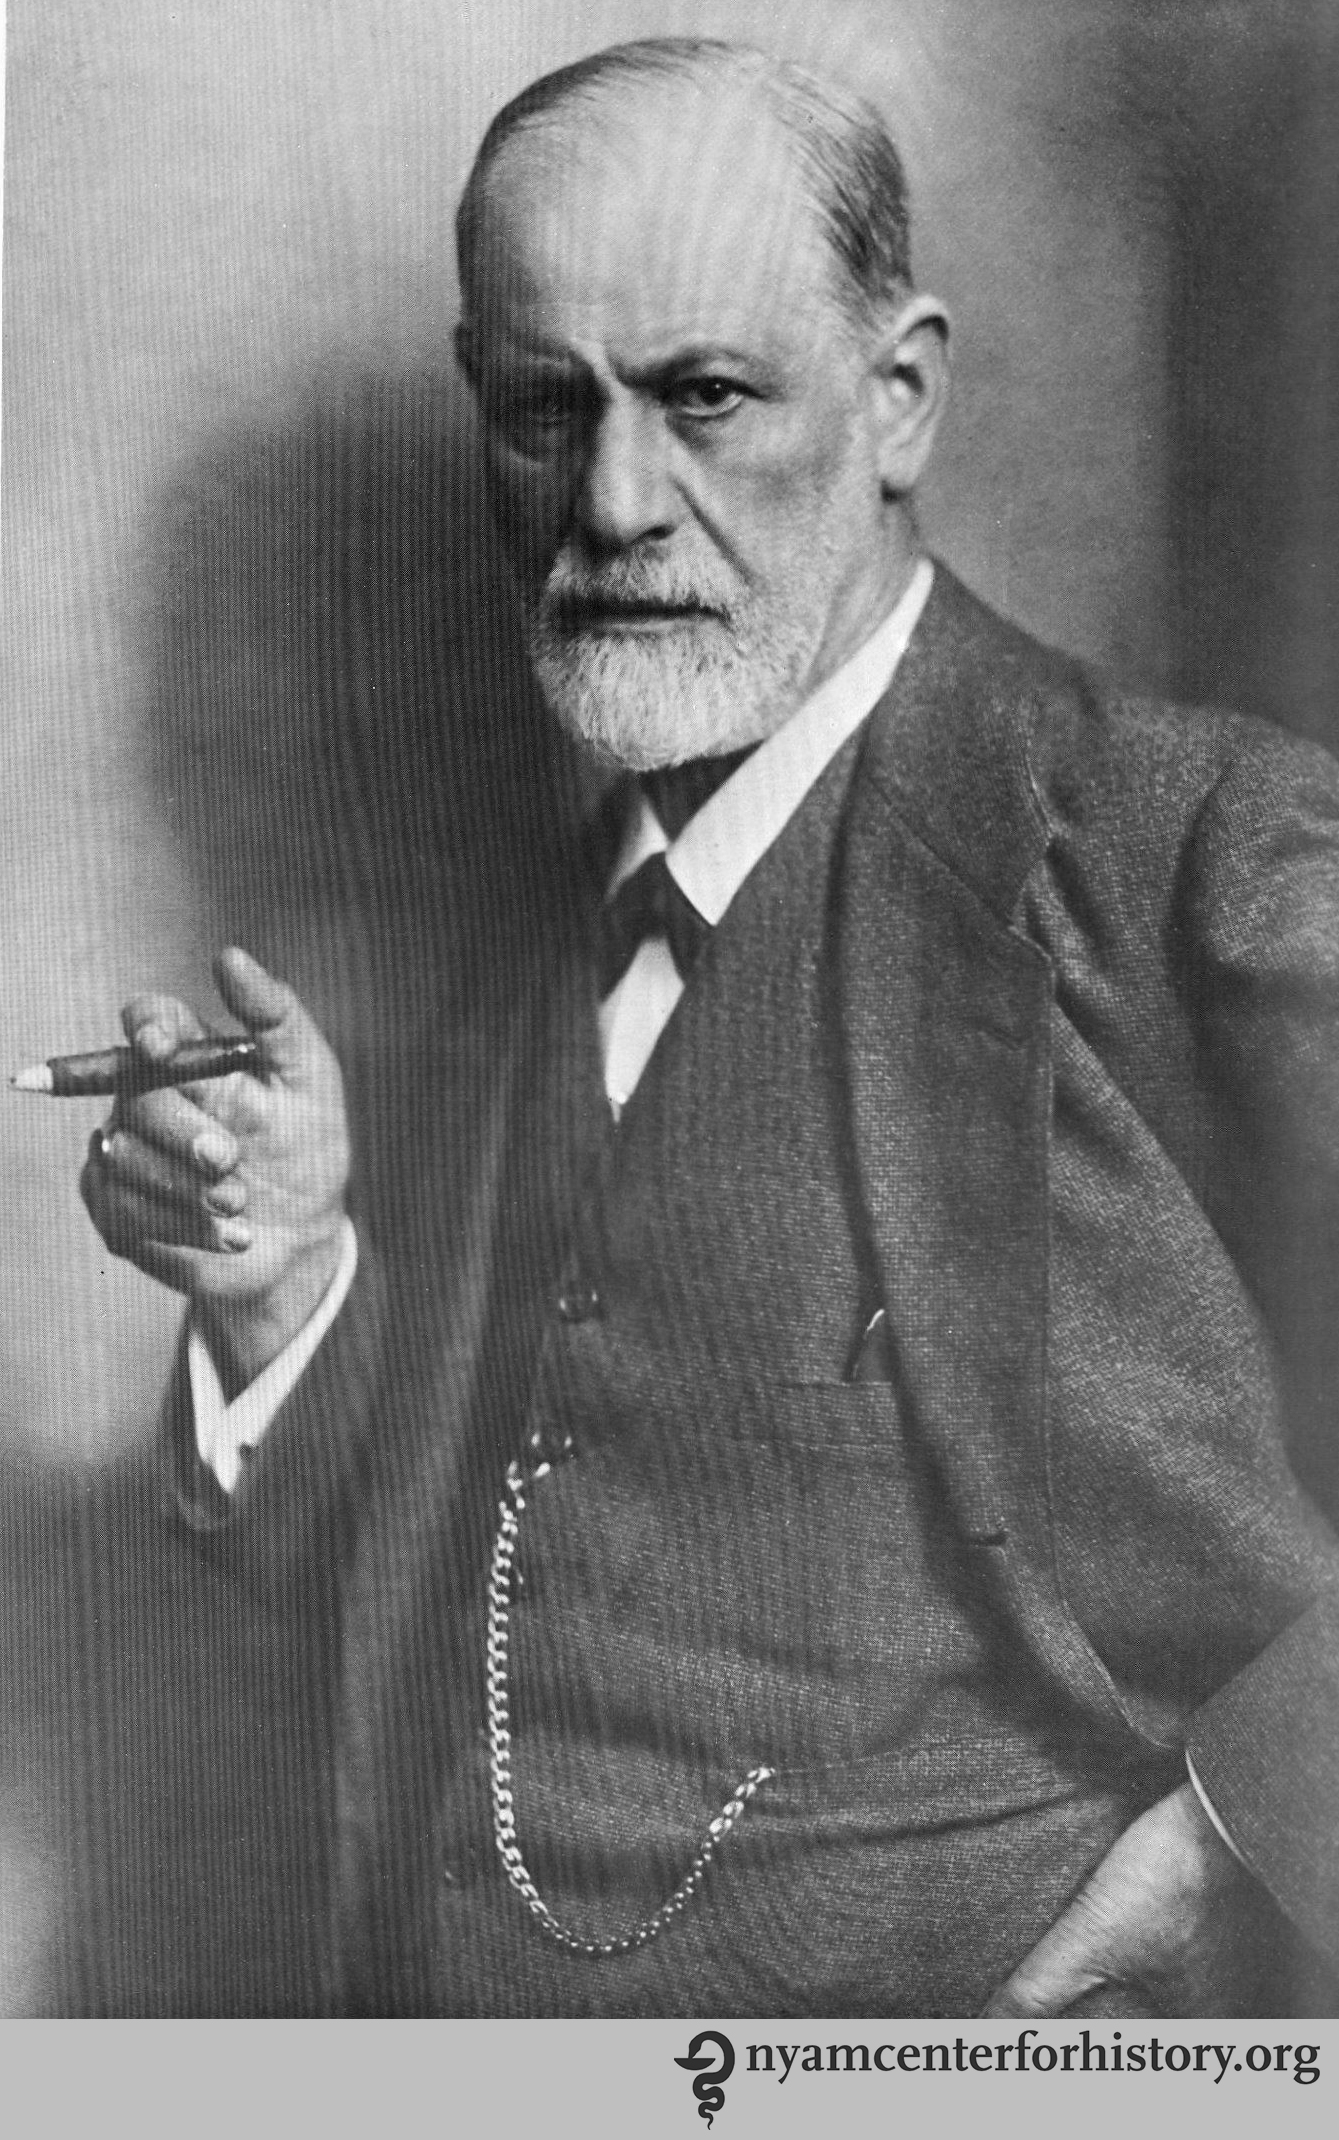 sigmund freud books health and history freud circa 1921 in ernst l freud lucie freud and ilse grubrich